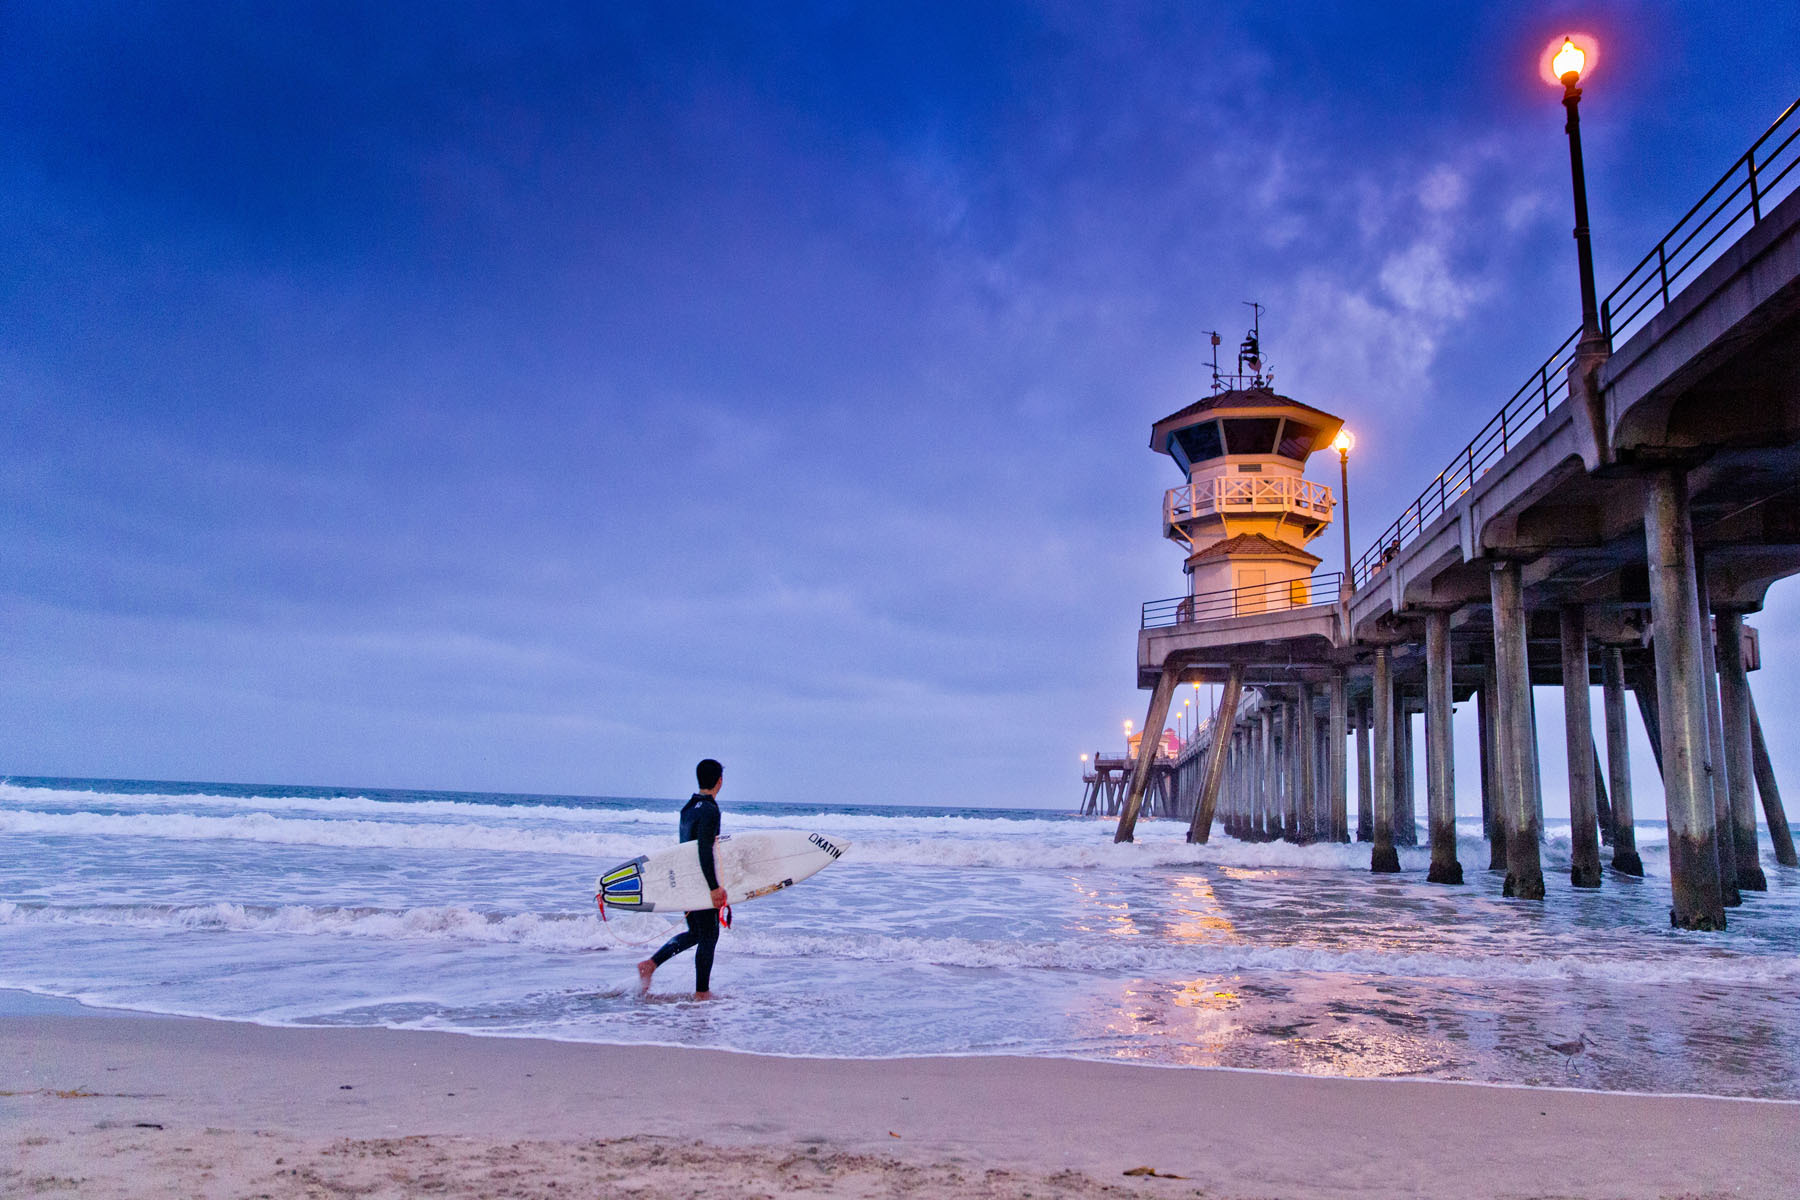 Surfing Huntington Beach Pier - Corporate Advertising Photography | Dallas TX - Robie Capps